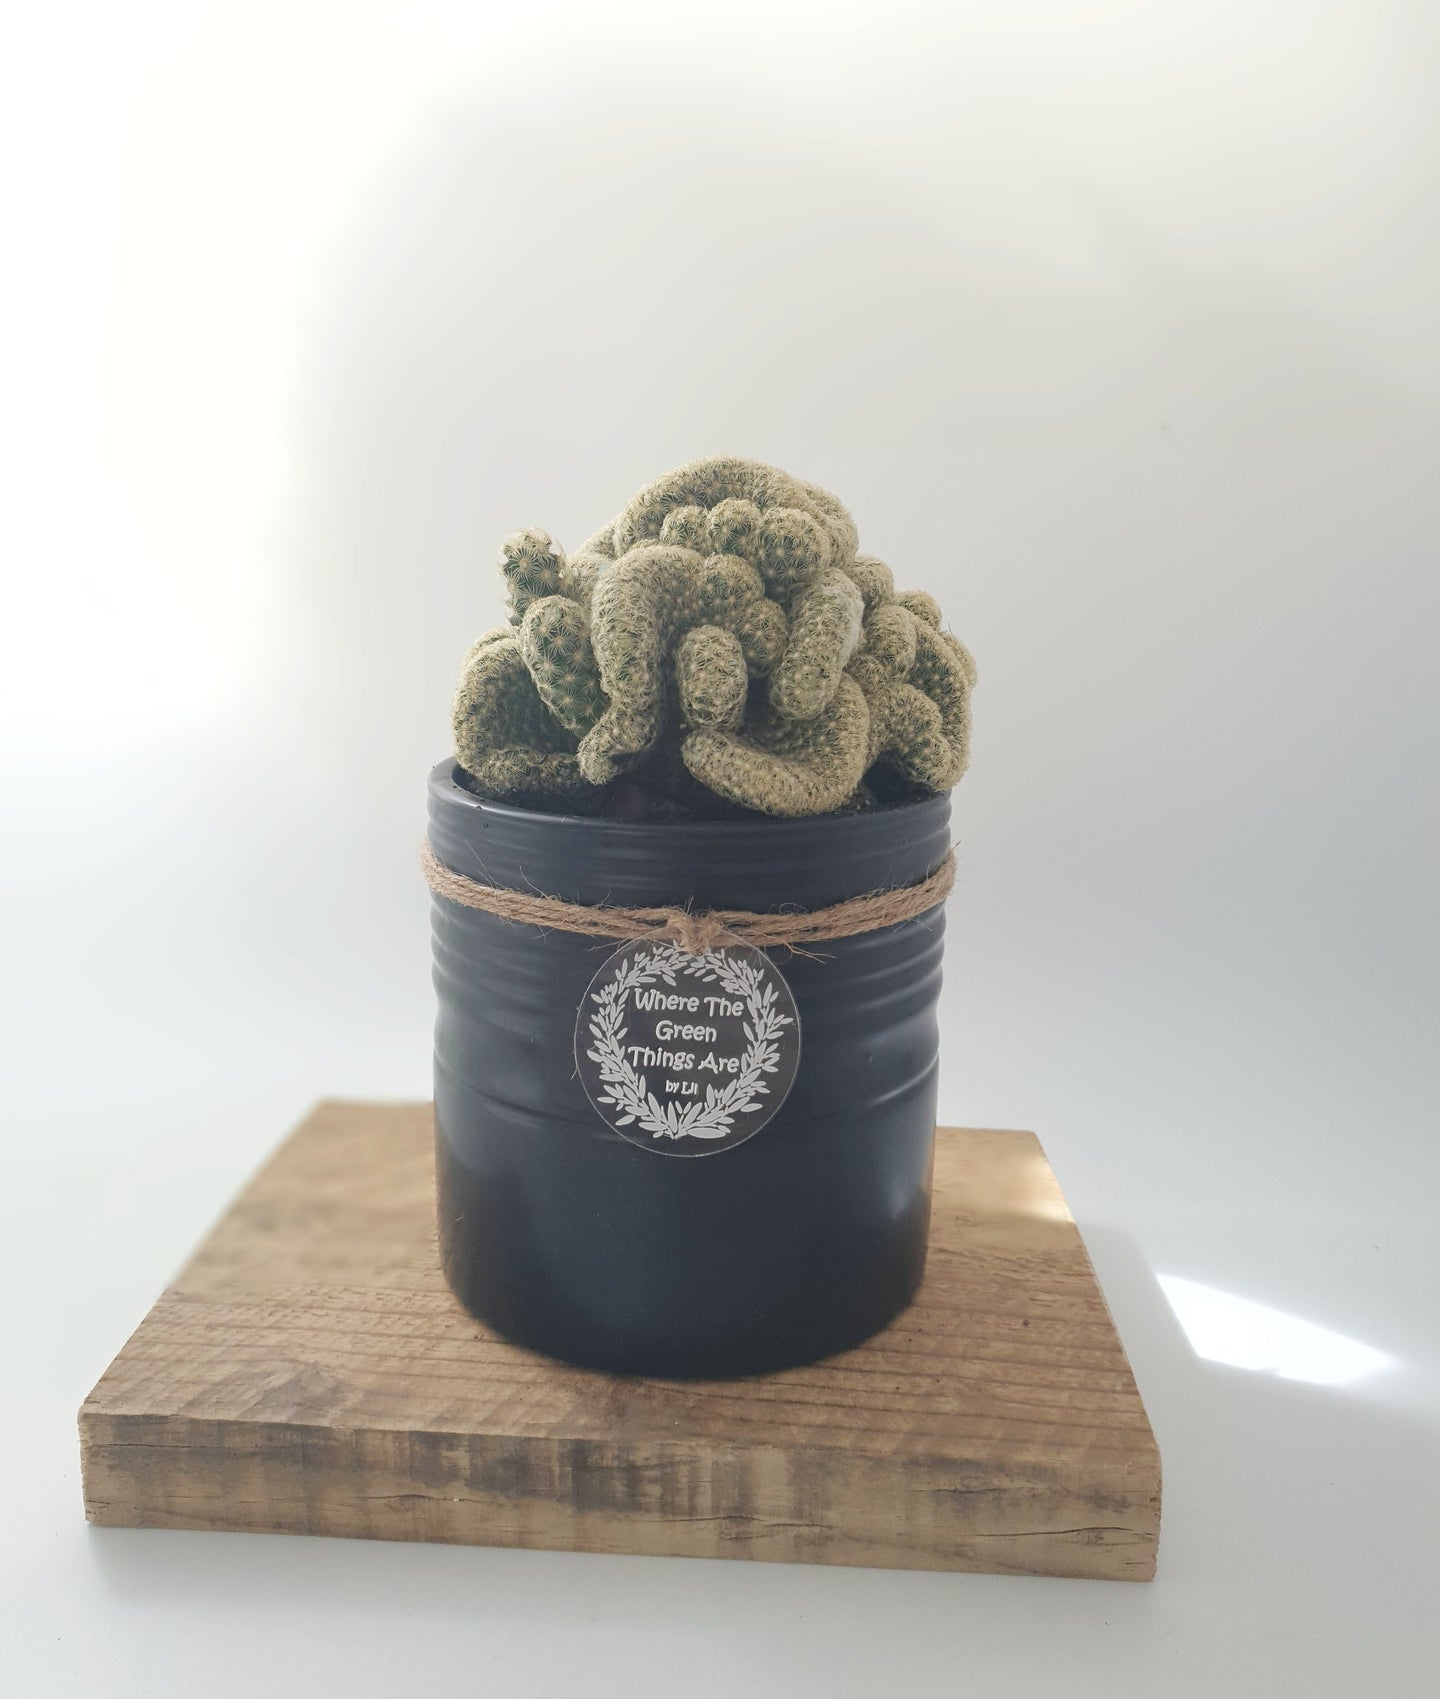 Brain cactus in black pot - Where The Green Things Are